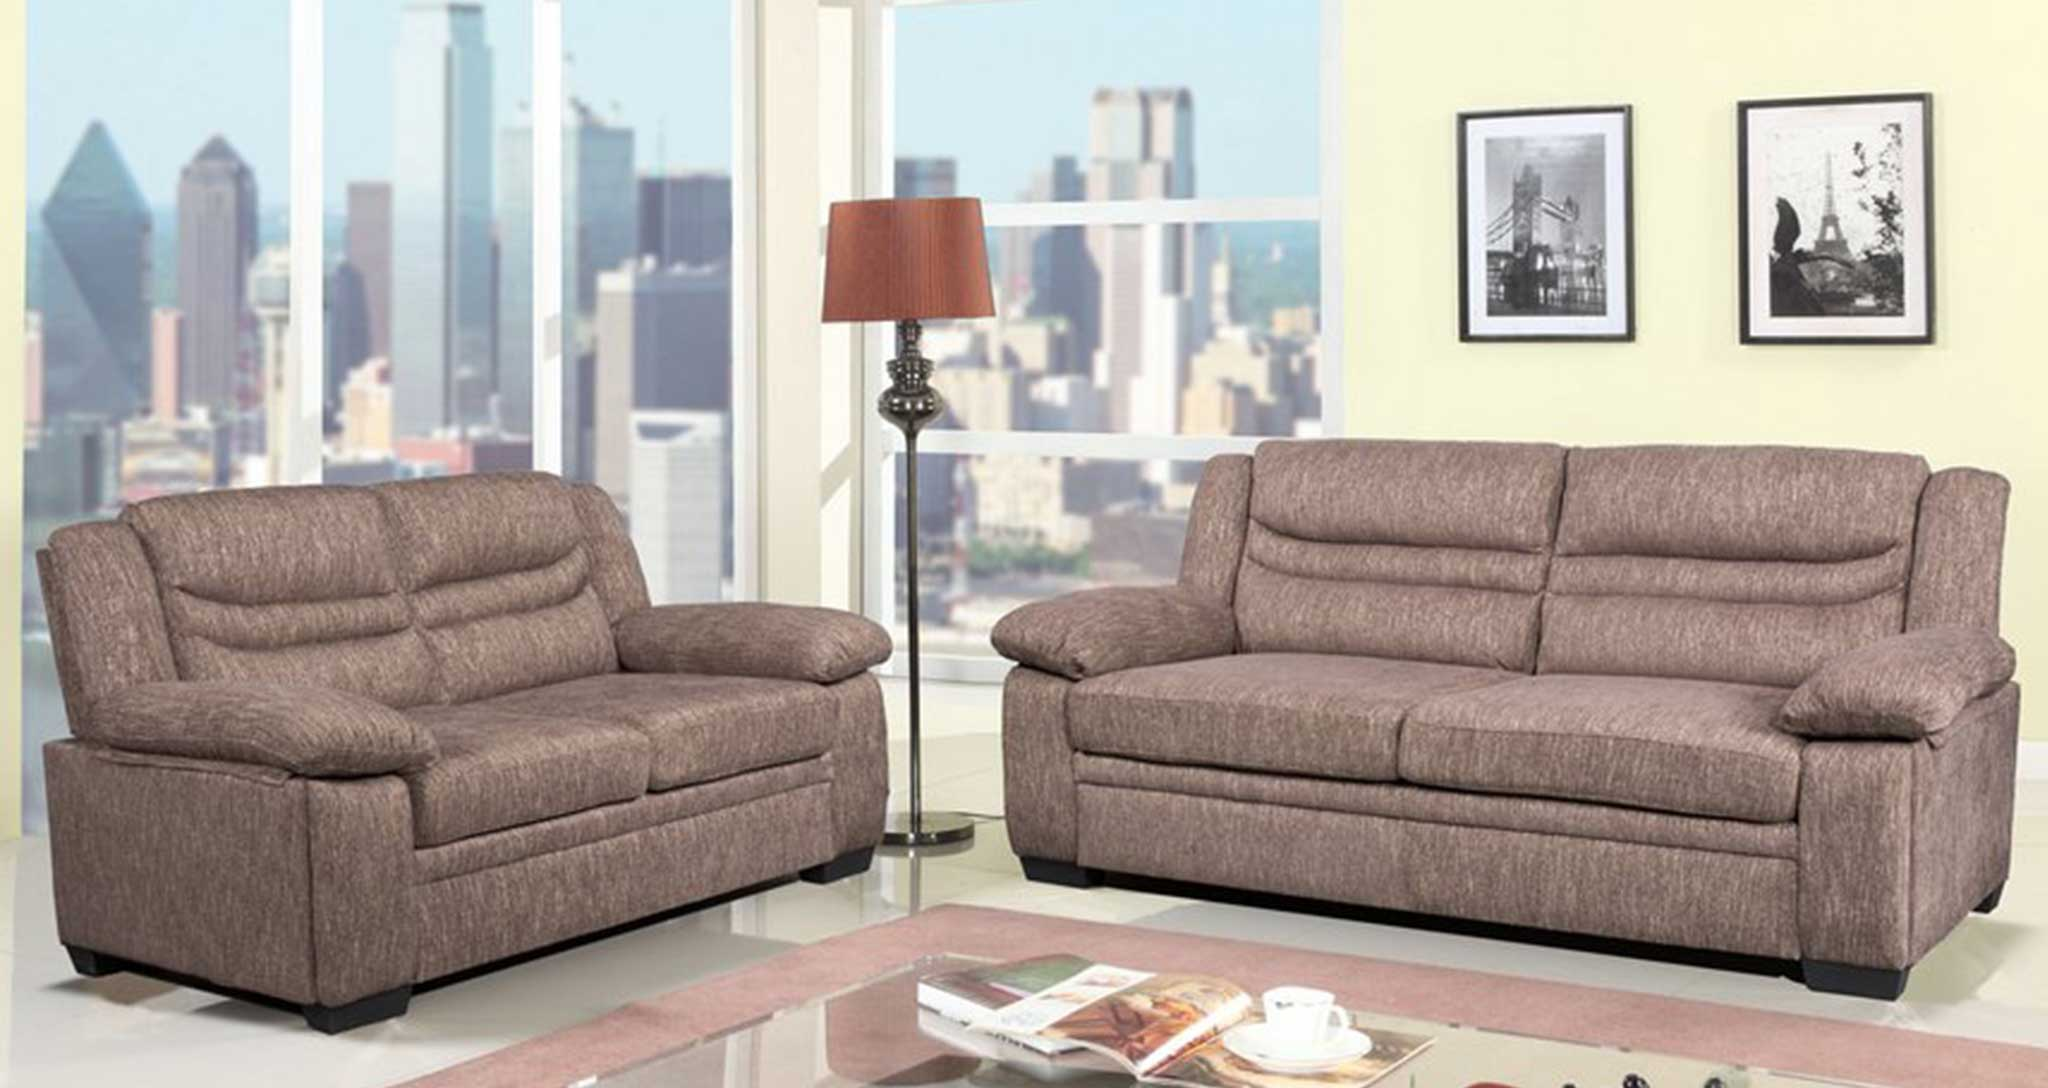 sofa beds denver co 90 inch covers bed home and textiles thesofa